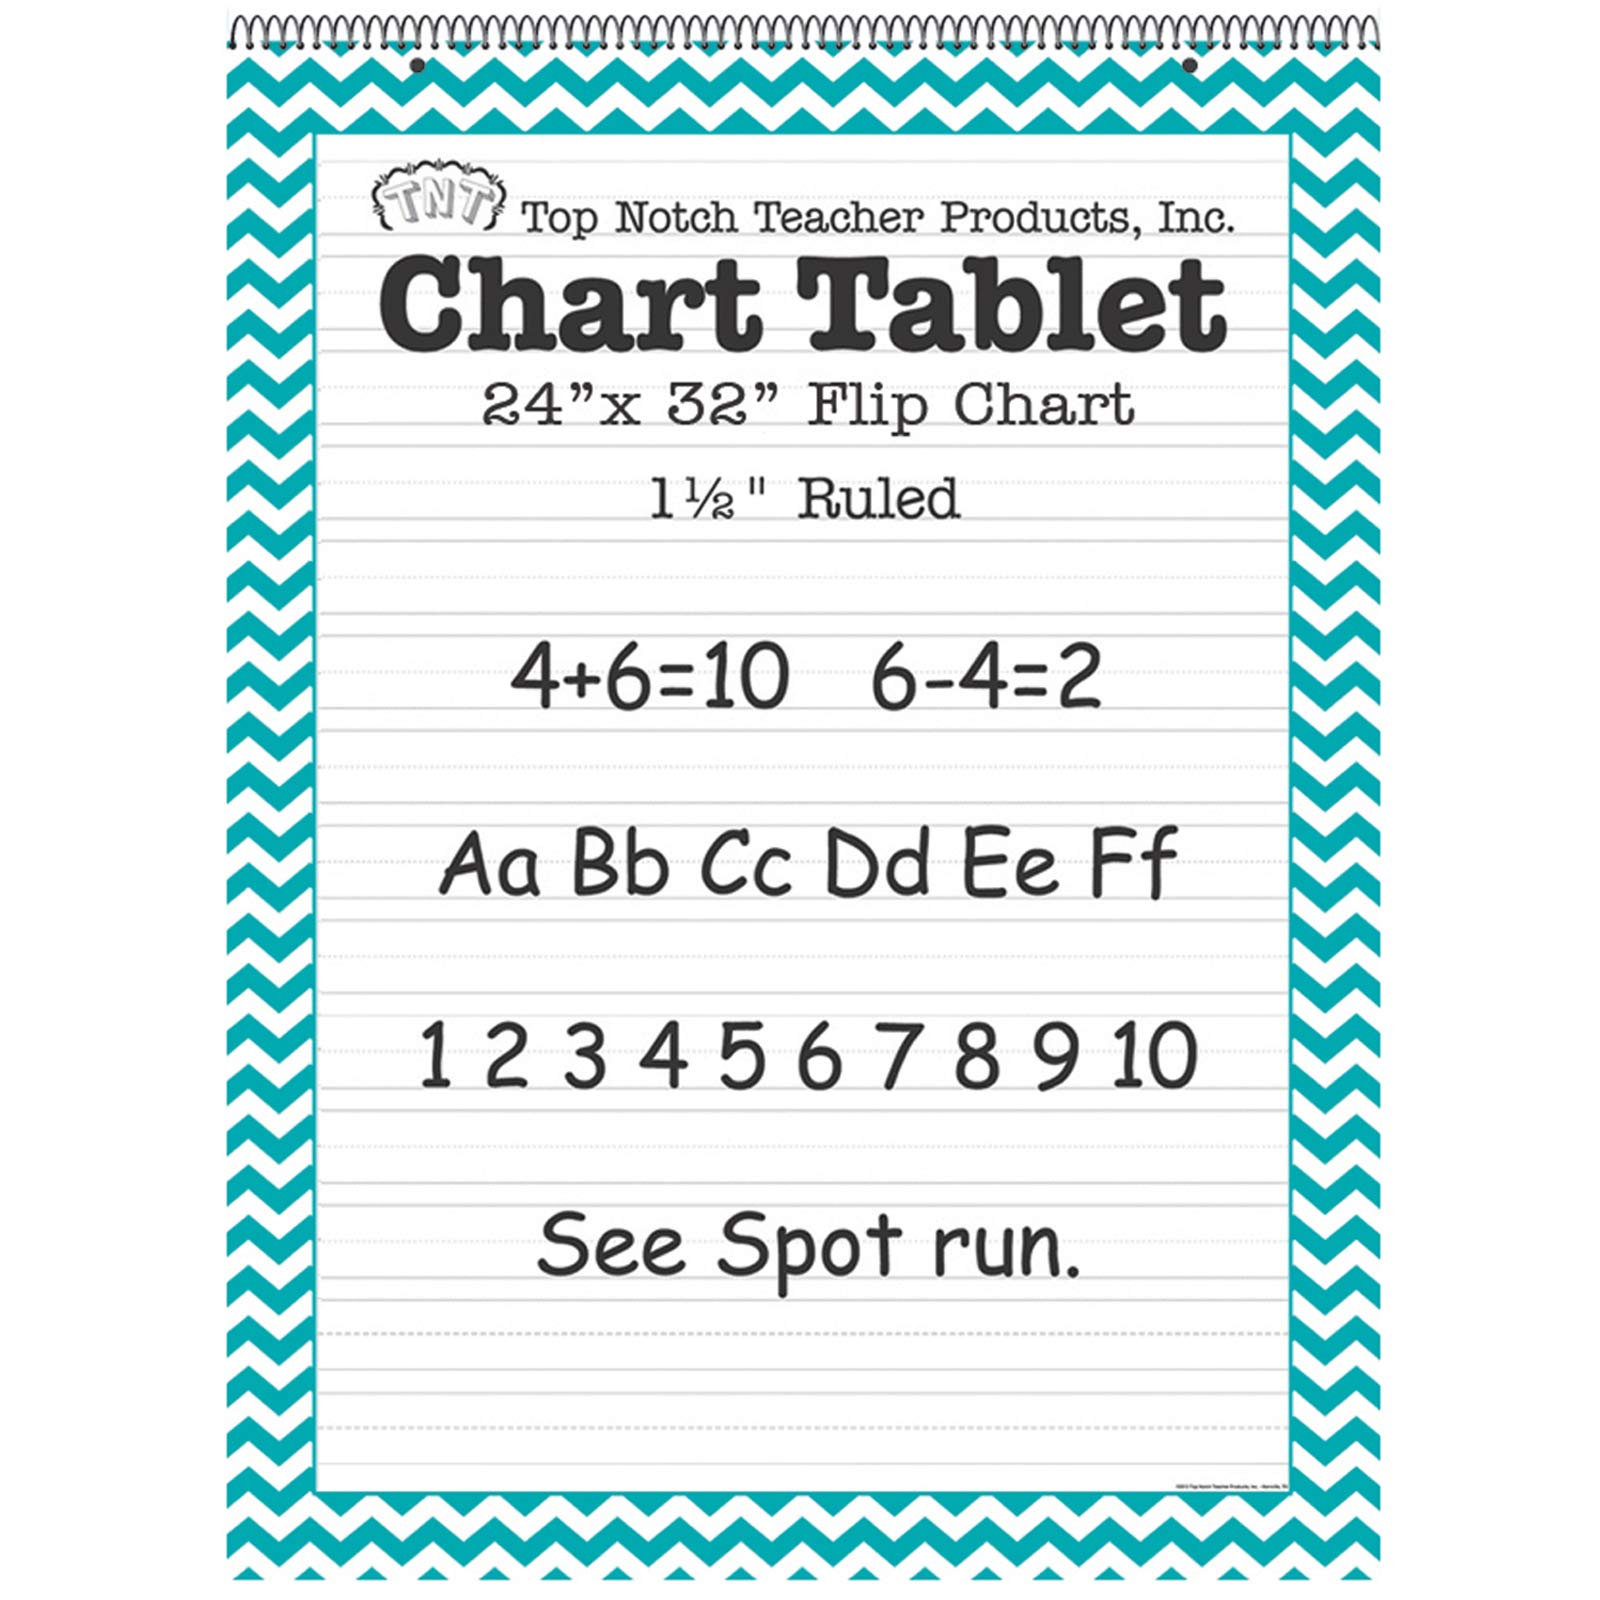 Top Notch Teacher Products TOP3859BN Chart Tablet, 24'' x 32'', 1-1/2'' Ruled, Teal Chevron, 25 Sheets, Pack of 2